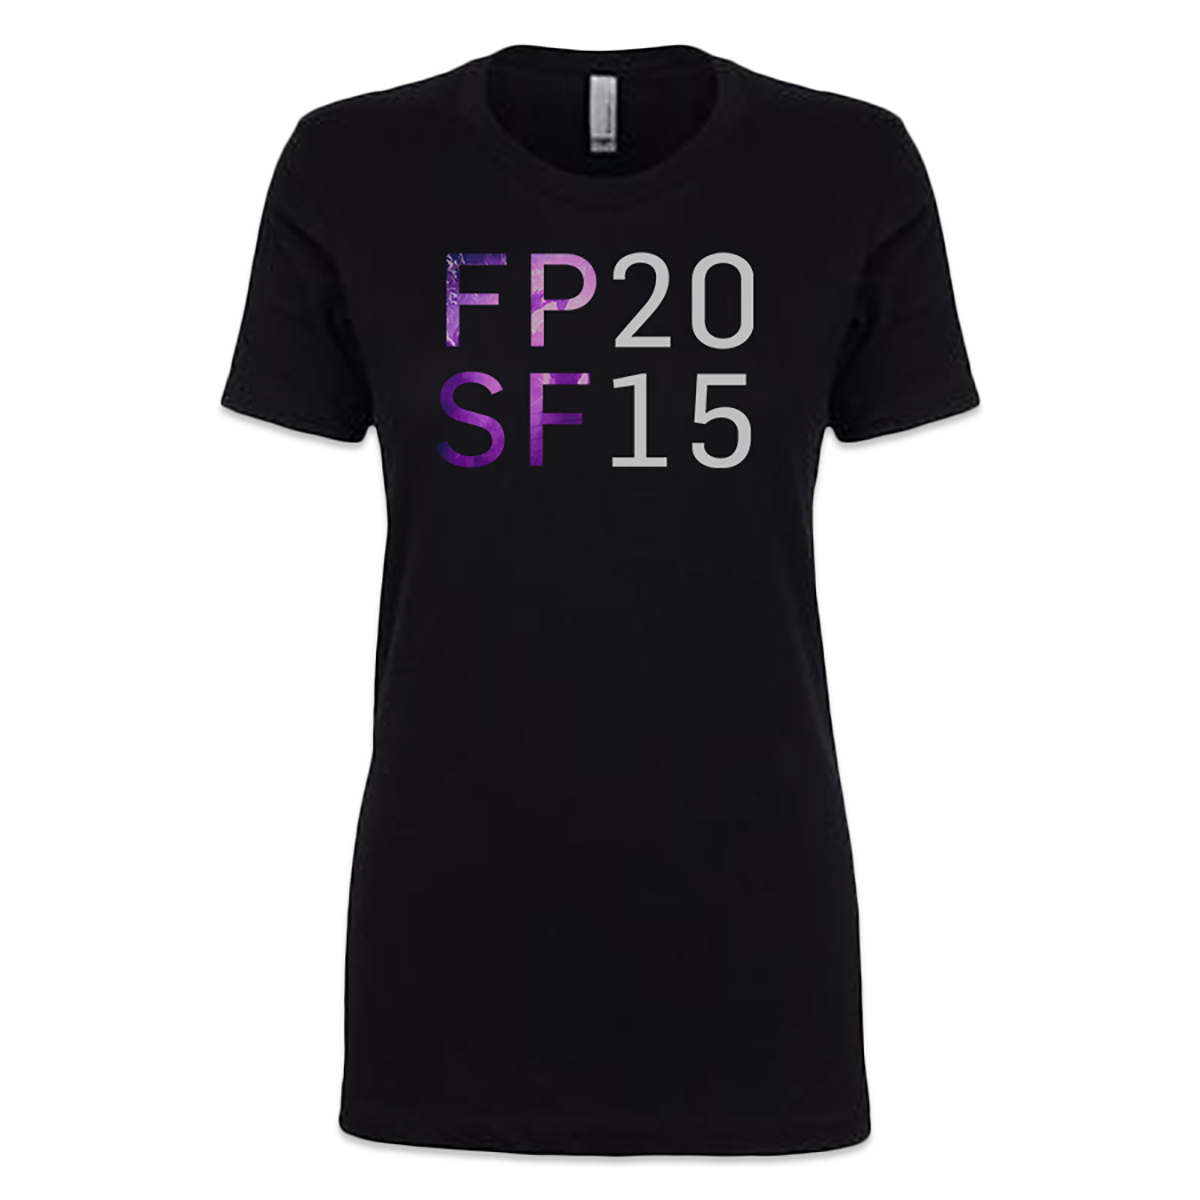 FPSF 2015 Ladies Event T-Shirt